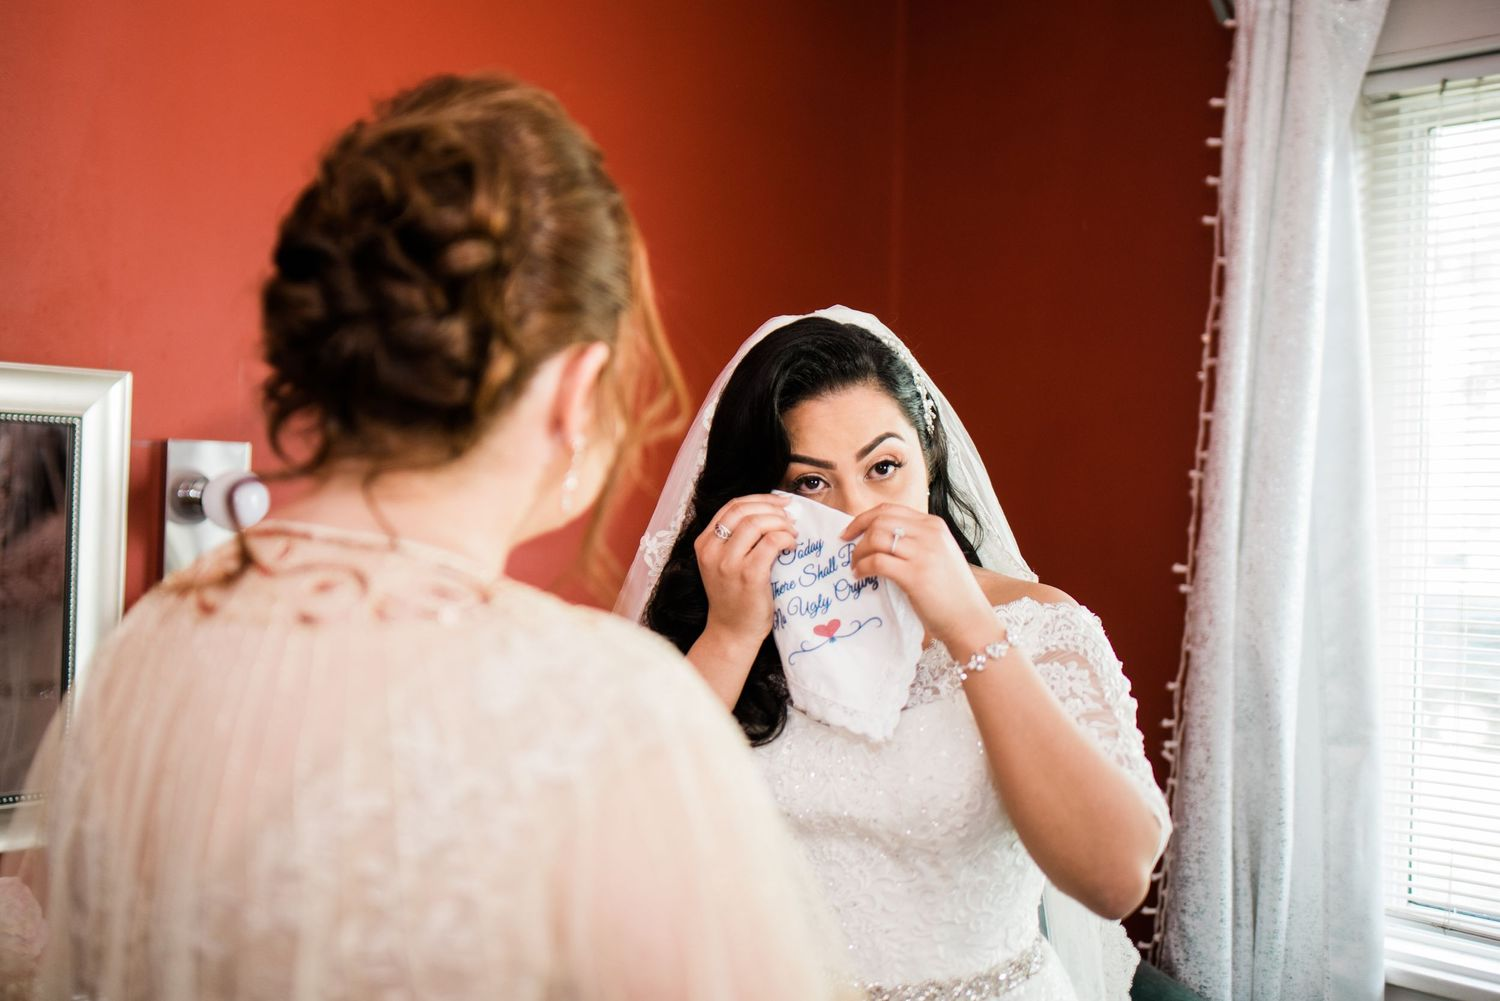 bride using hanker-chief to wipe tears away